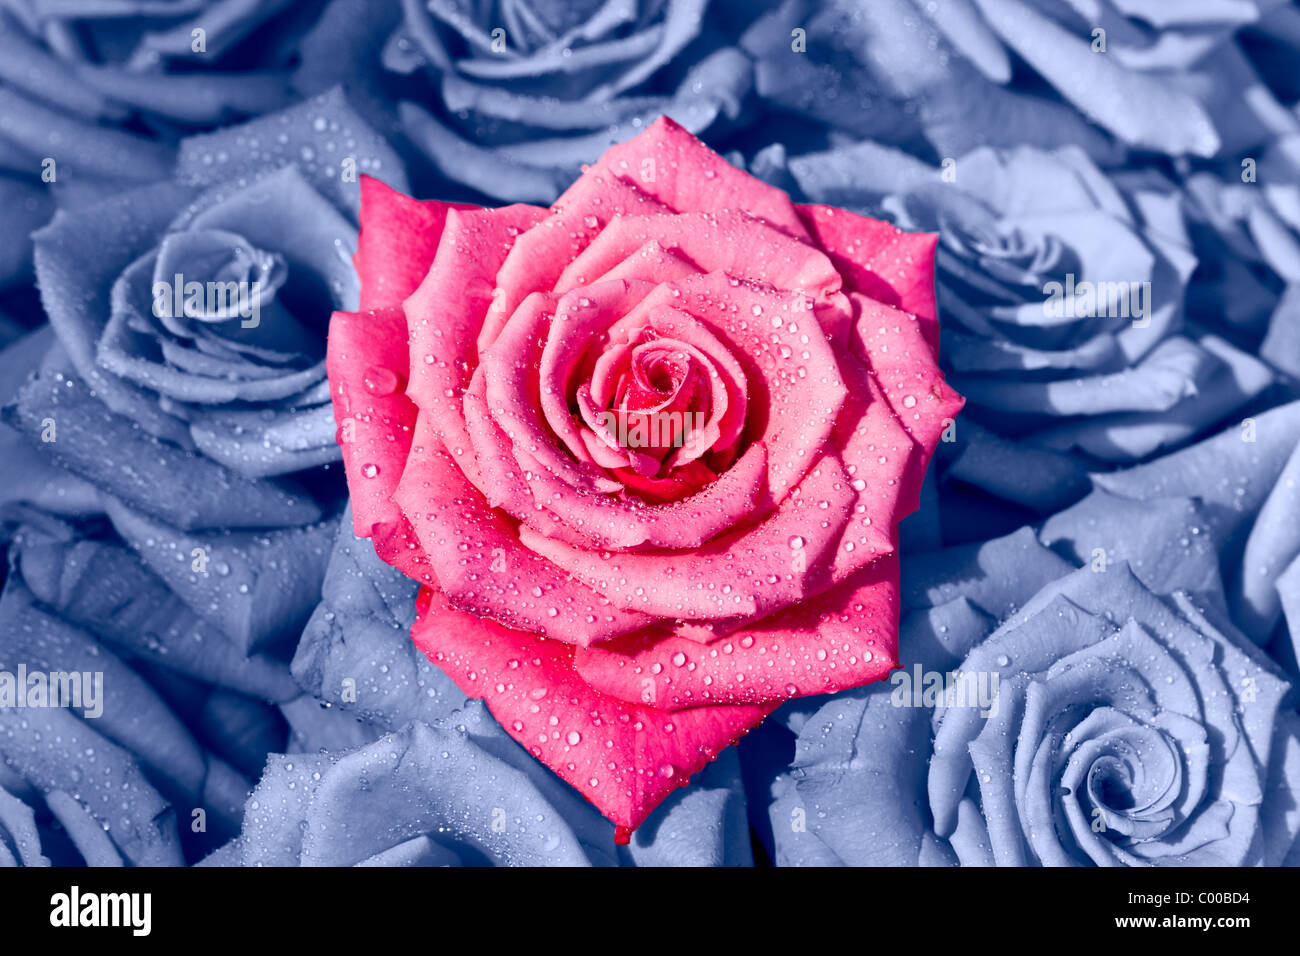 A beautiful singular pink rose in the middle of a bed of blue roses. - Stock Image